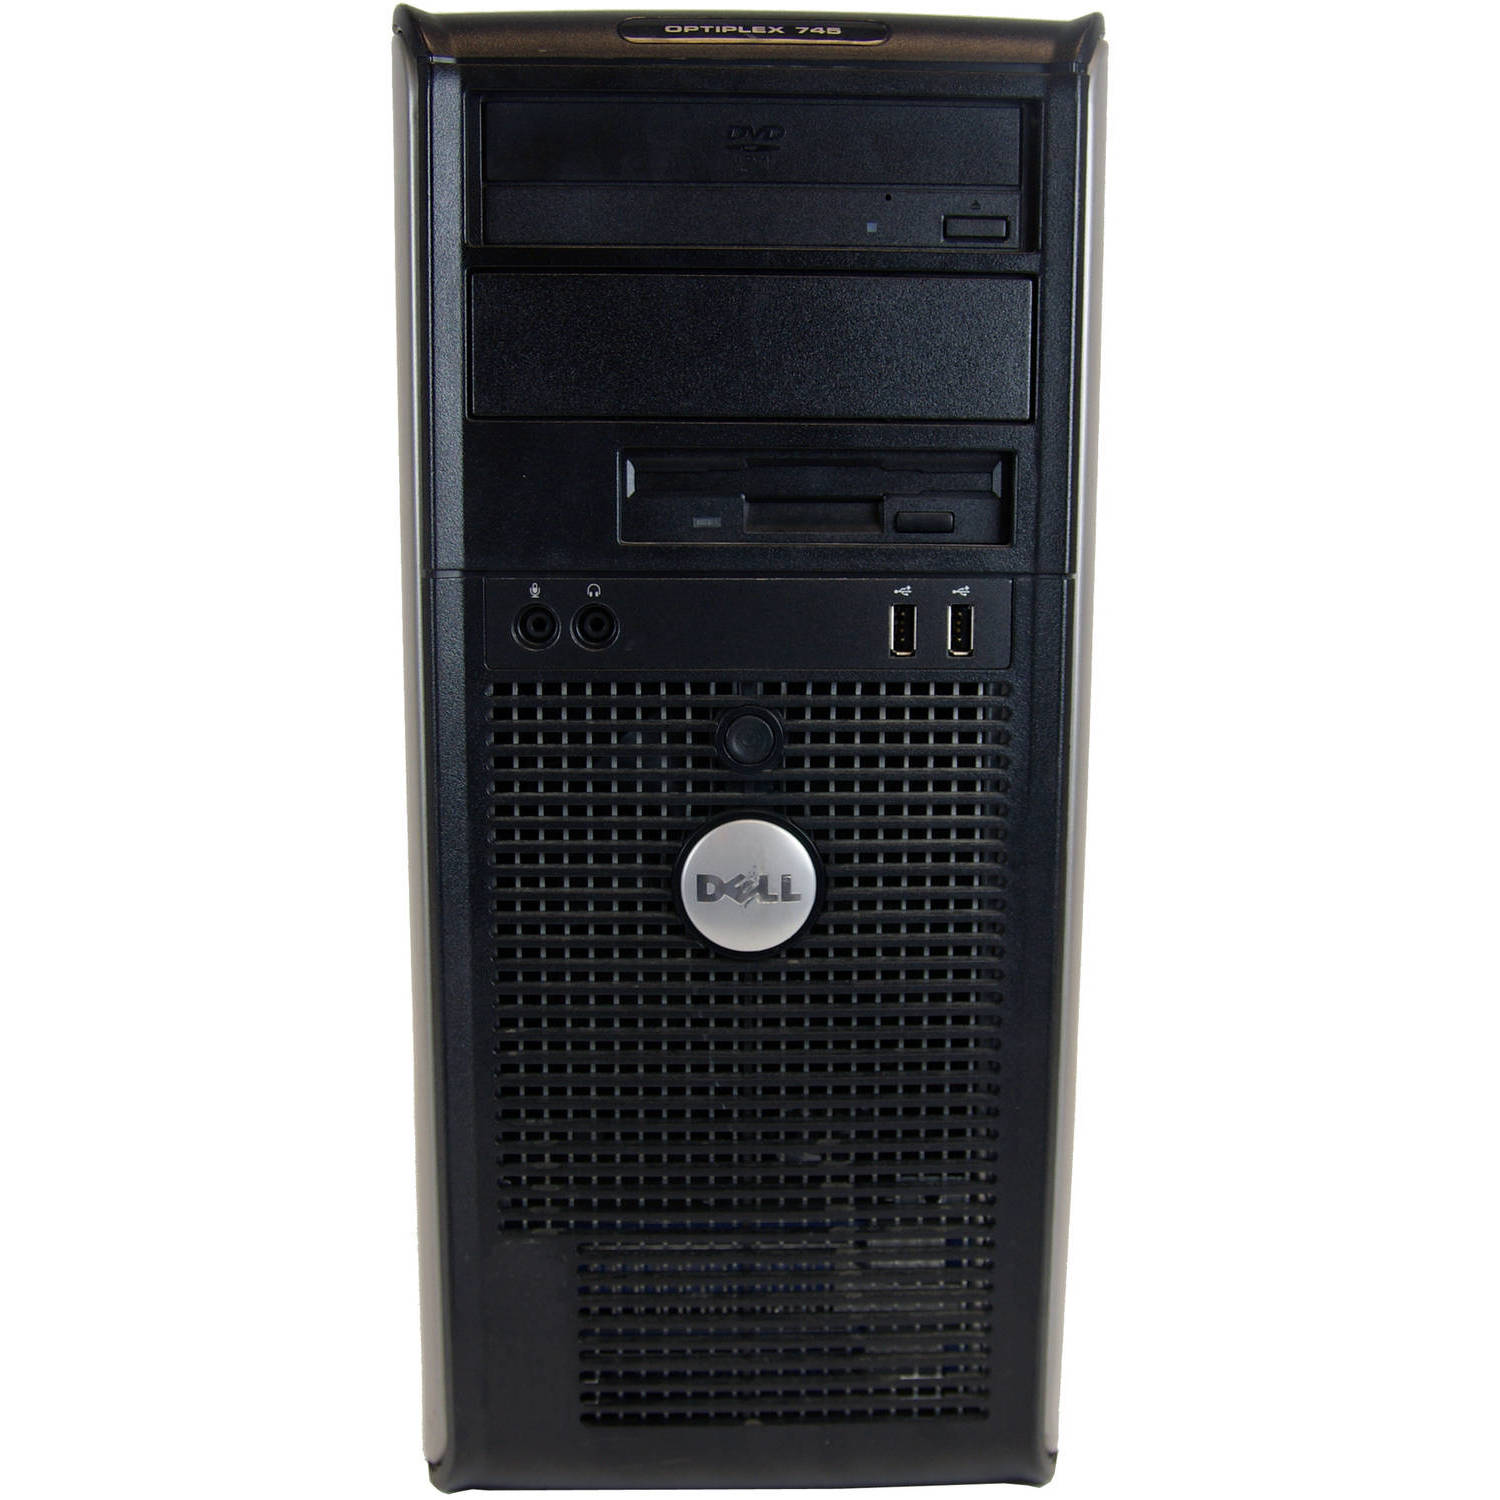 Refurbished Dell 745 TWR Desktop PC with Intel Core 2 Duo E4300 Processor, 4GB Memory, 500GB Hard Drive and Windows 10 Home (Monitor Not Included)